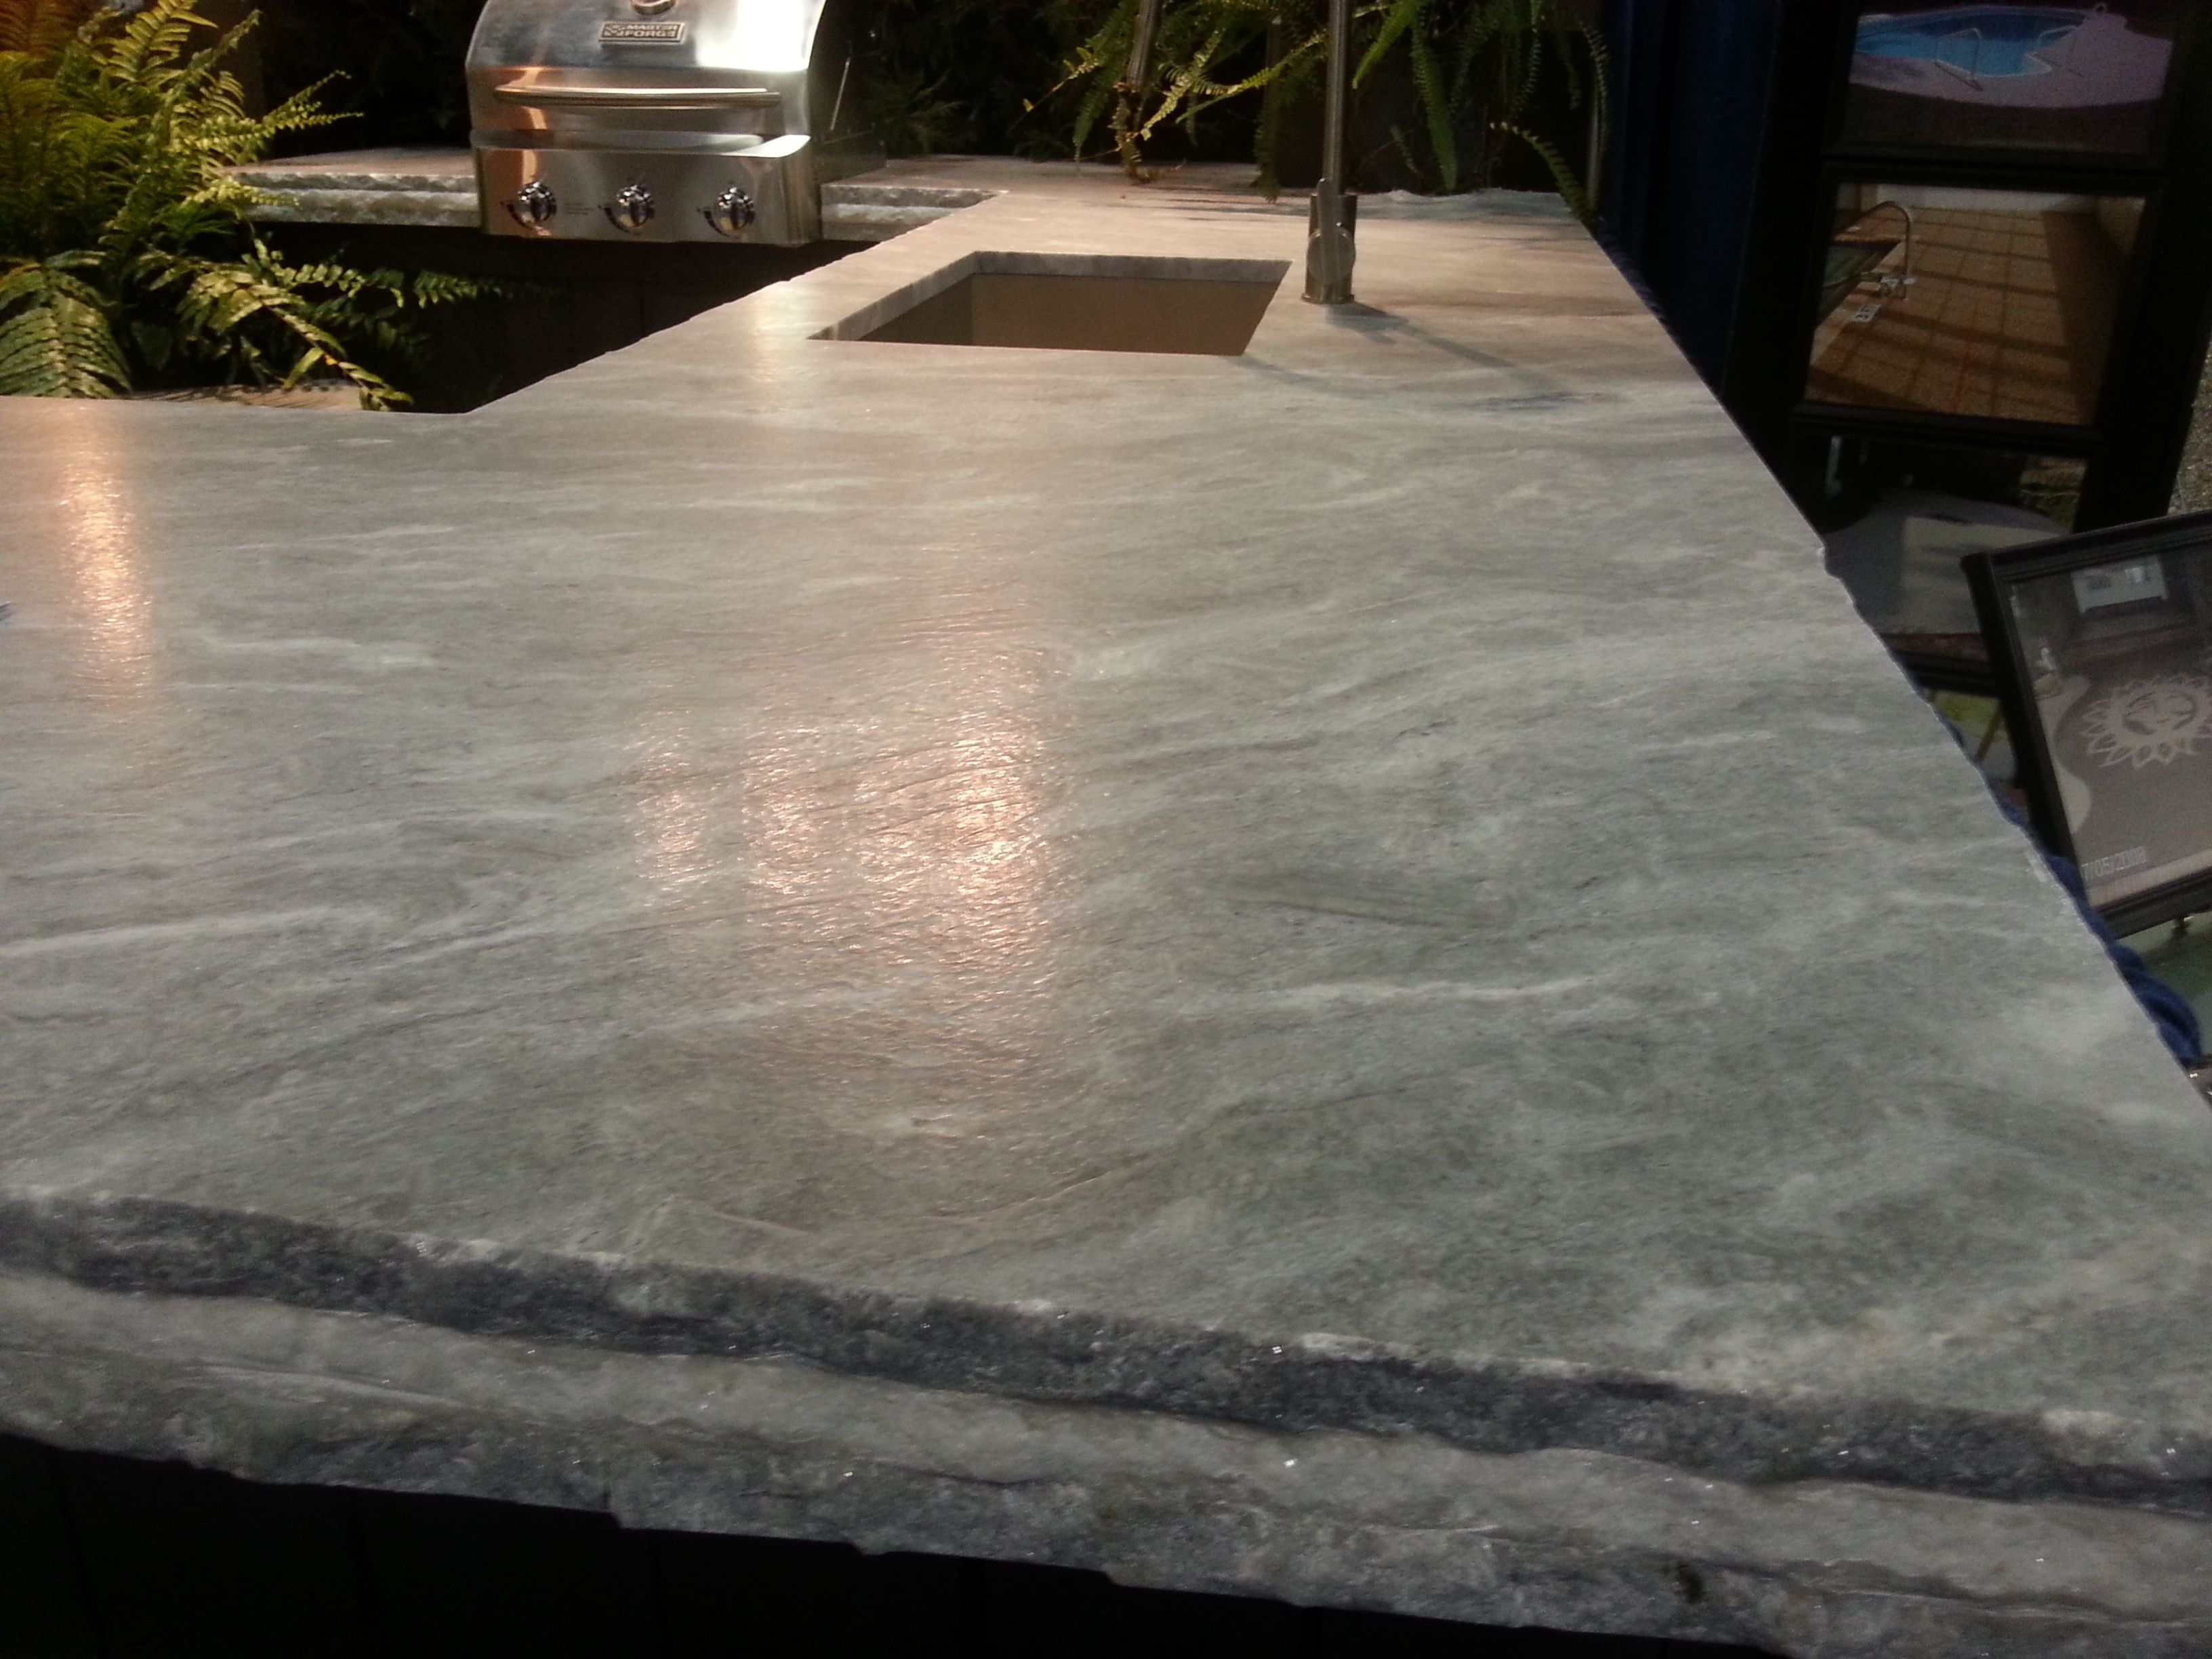 Sky White Quartzite With A Leathered Finish And A Triple Layered